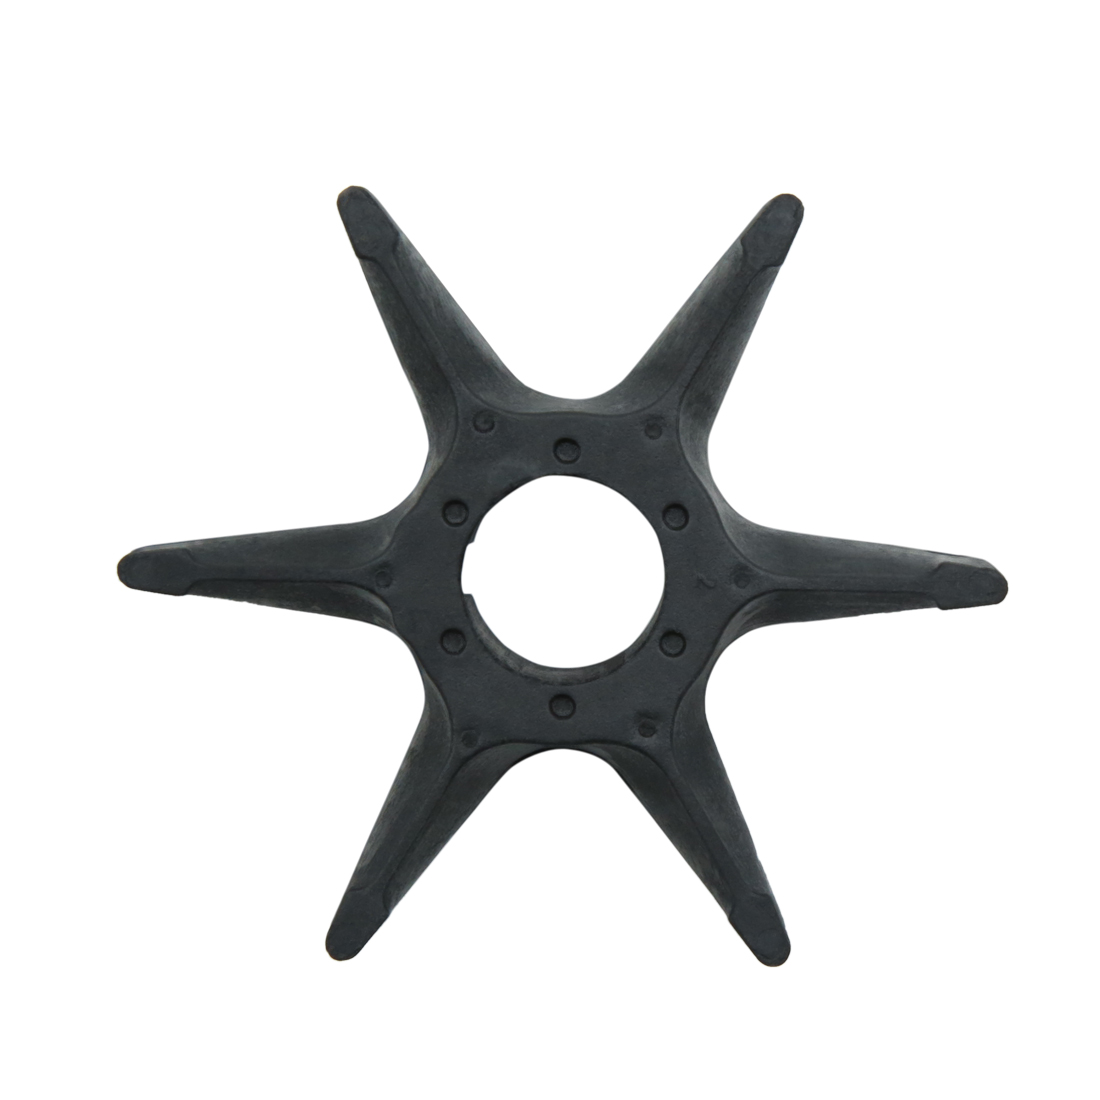 Boat Outboard Water Pump Impeller Replacement for Yamaha 40hp 676-44352-00-00 - image 3 of 5